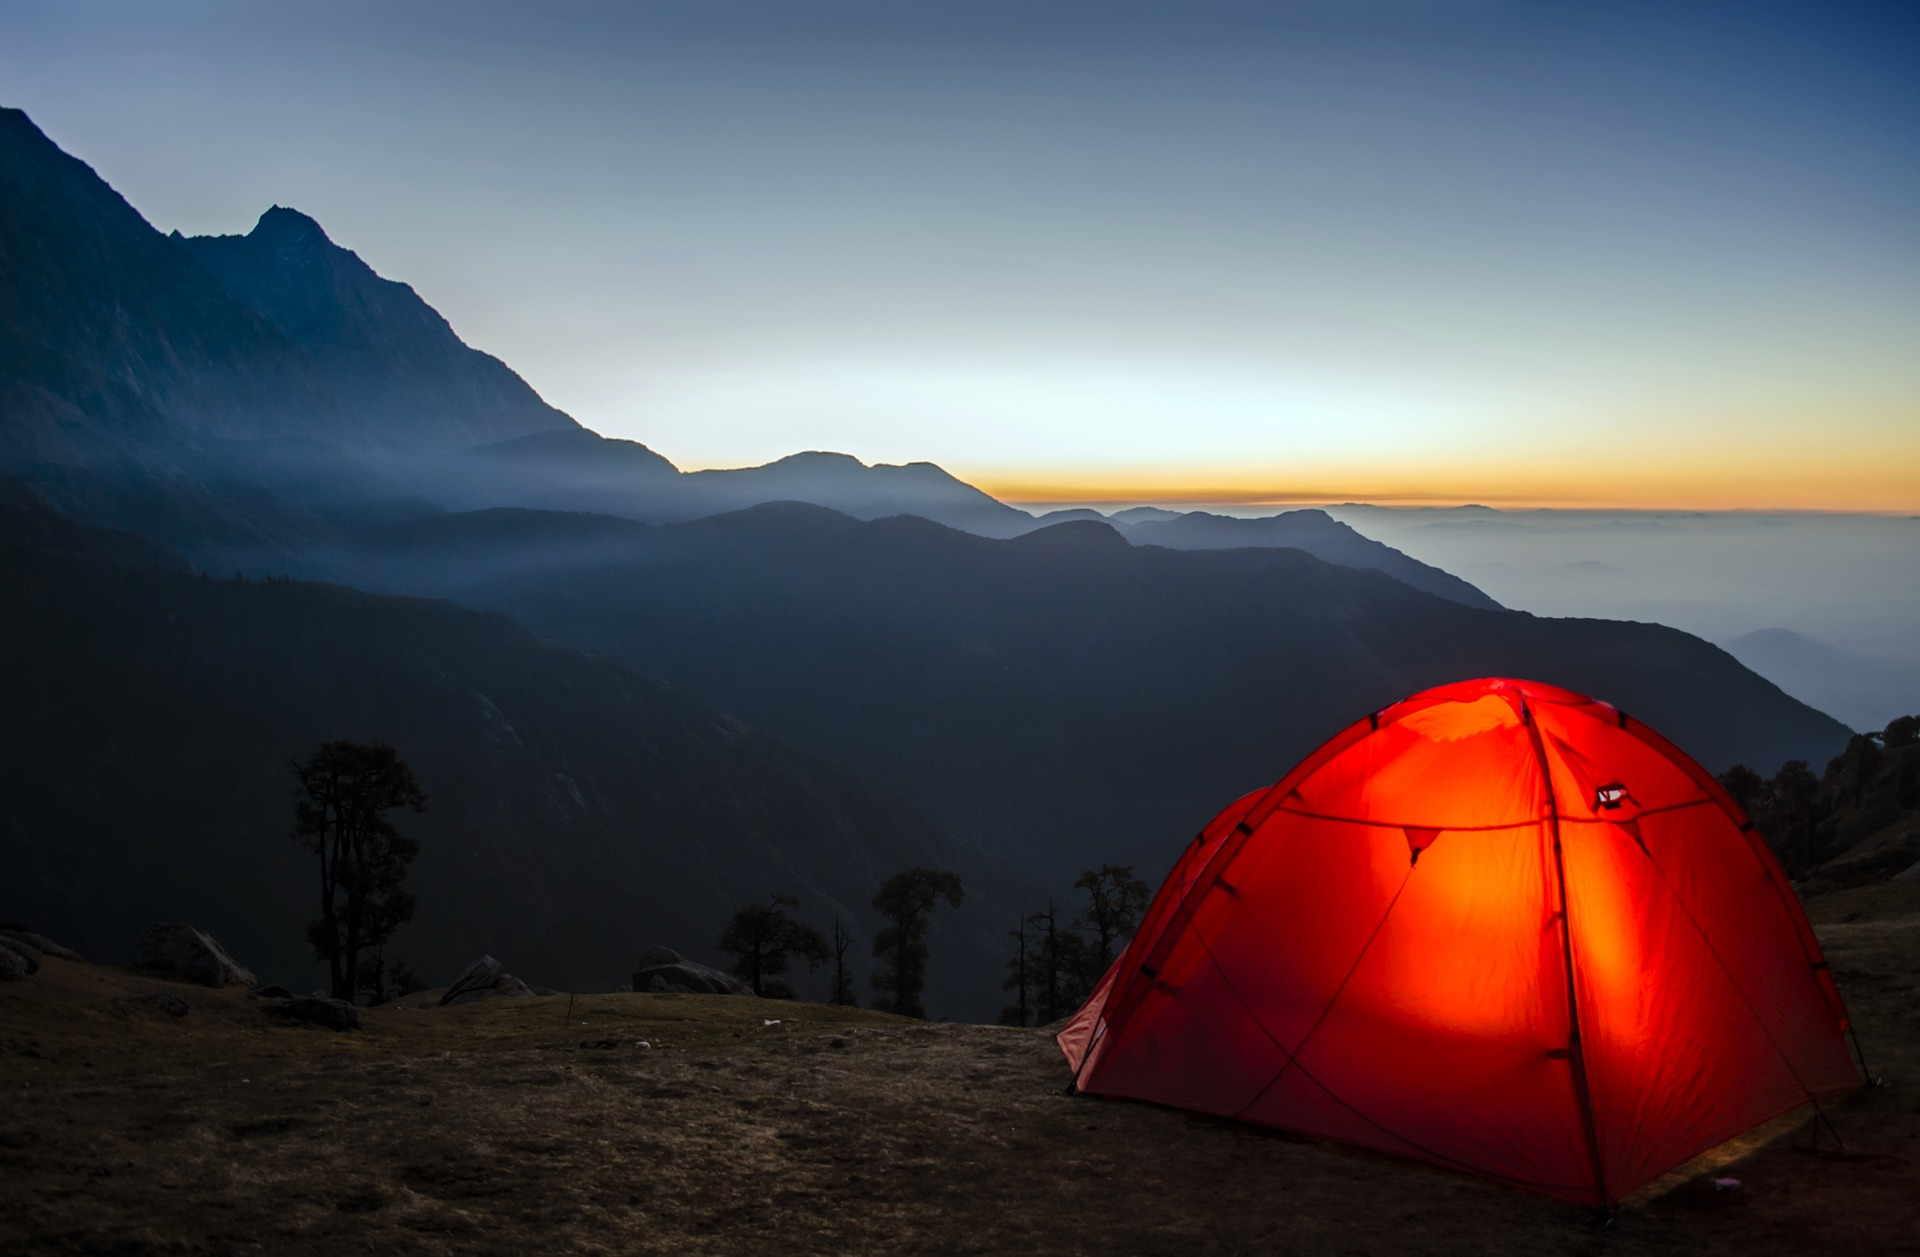 Be a Camping Pro with these Amazing Camping Hacks